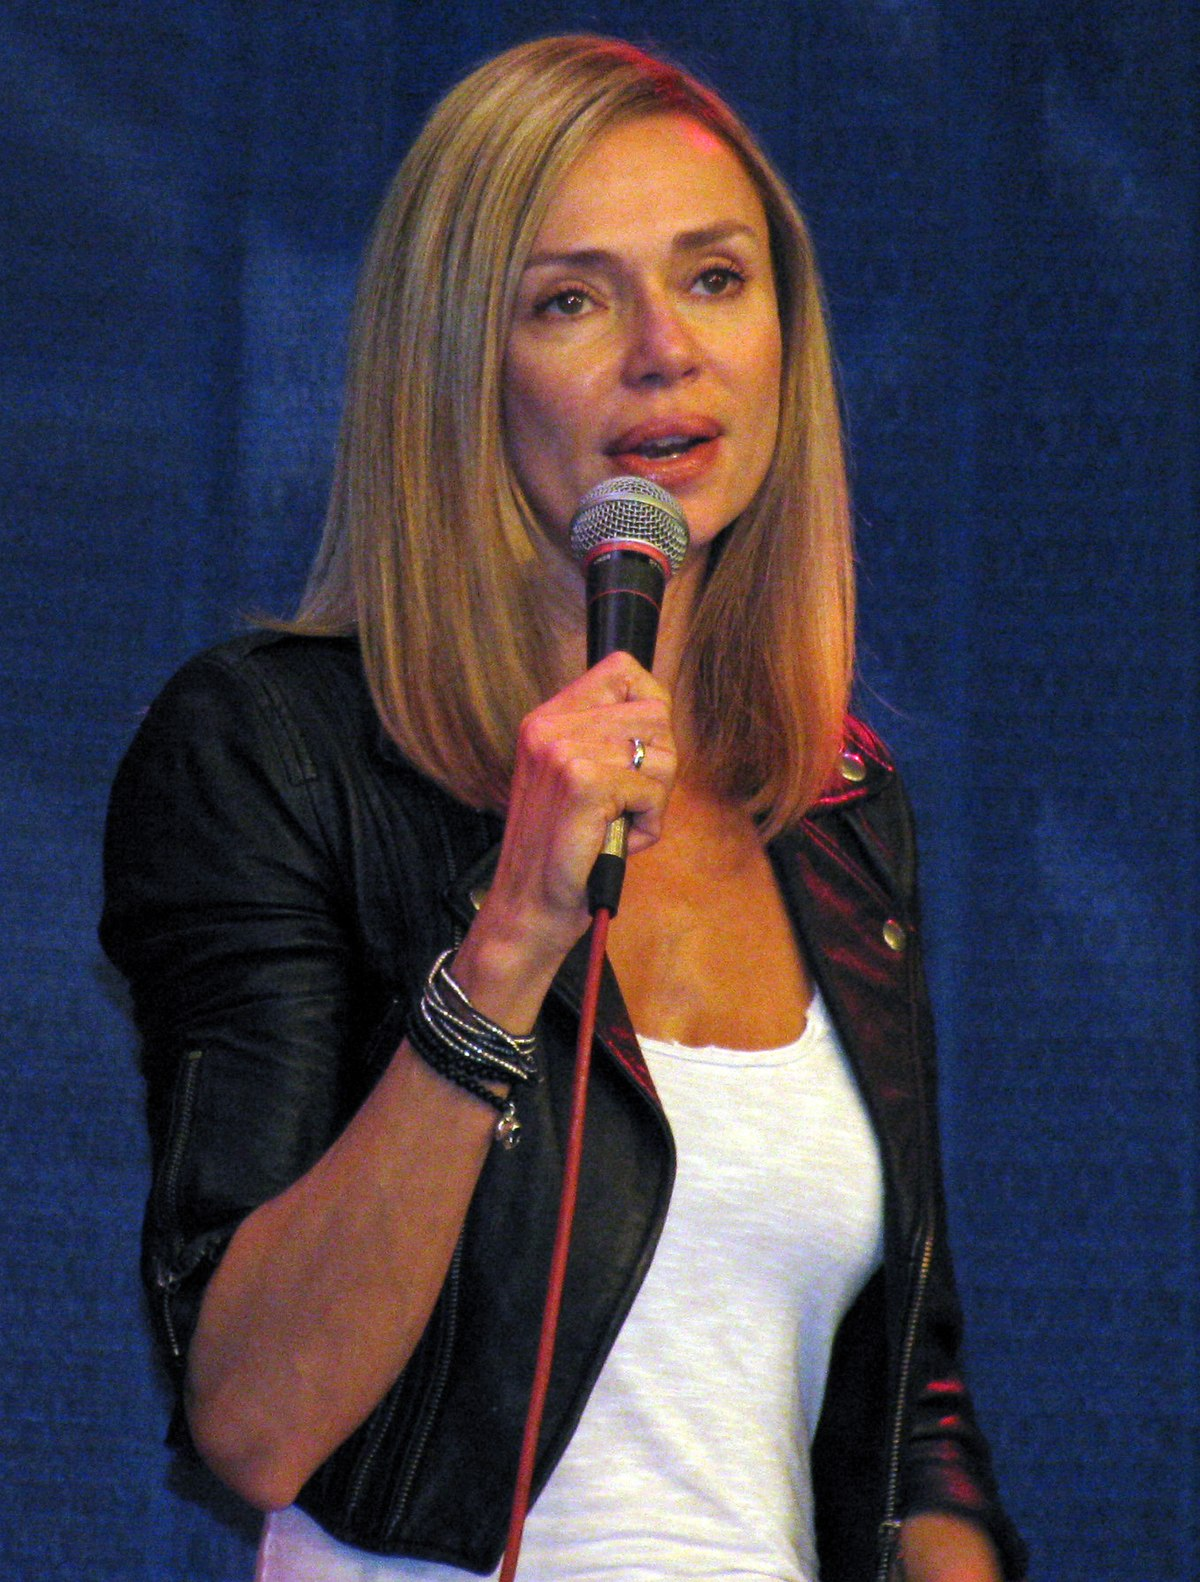 vanessa angel - wikipedia